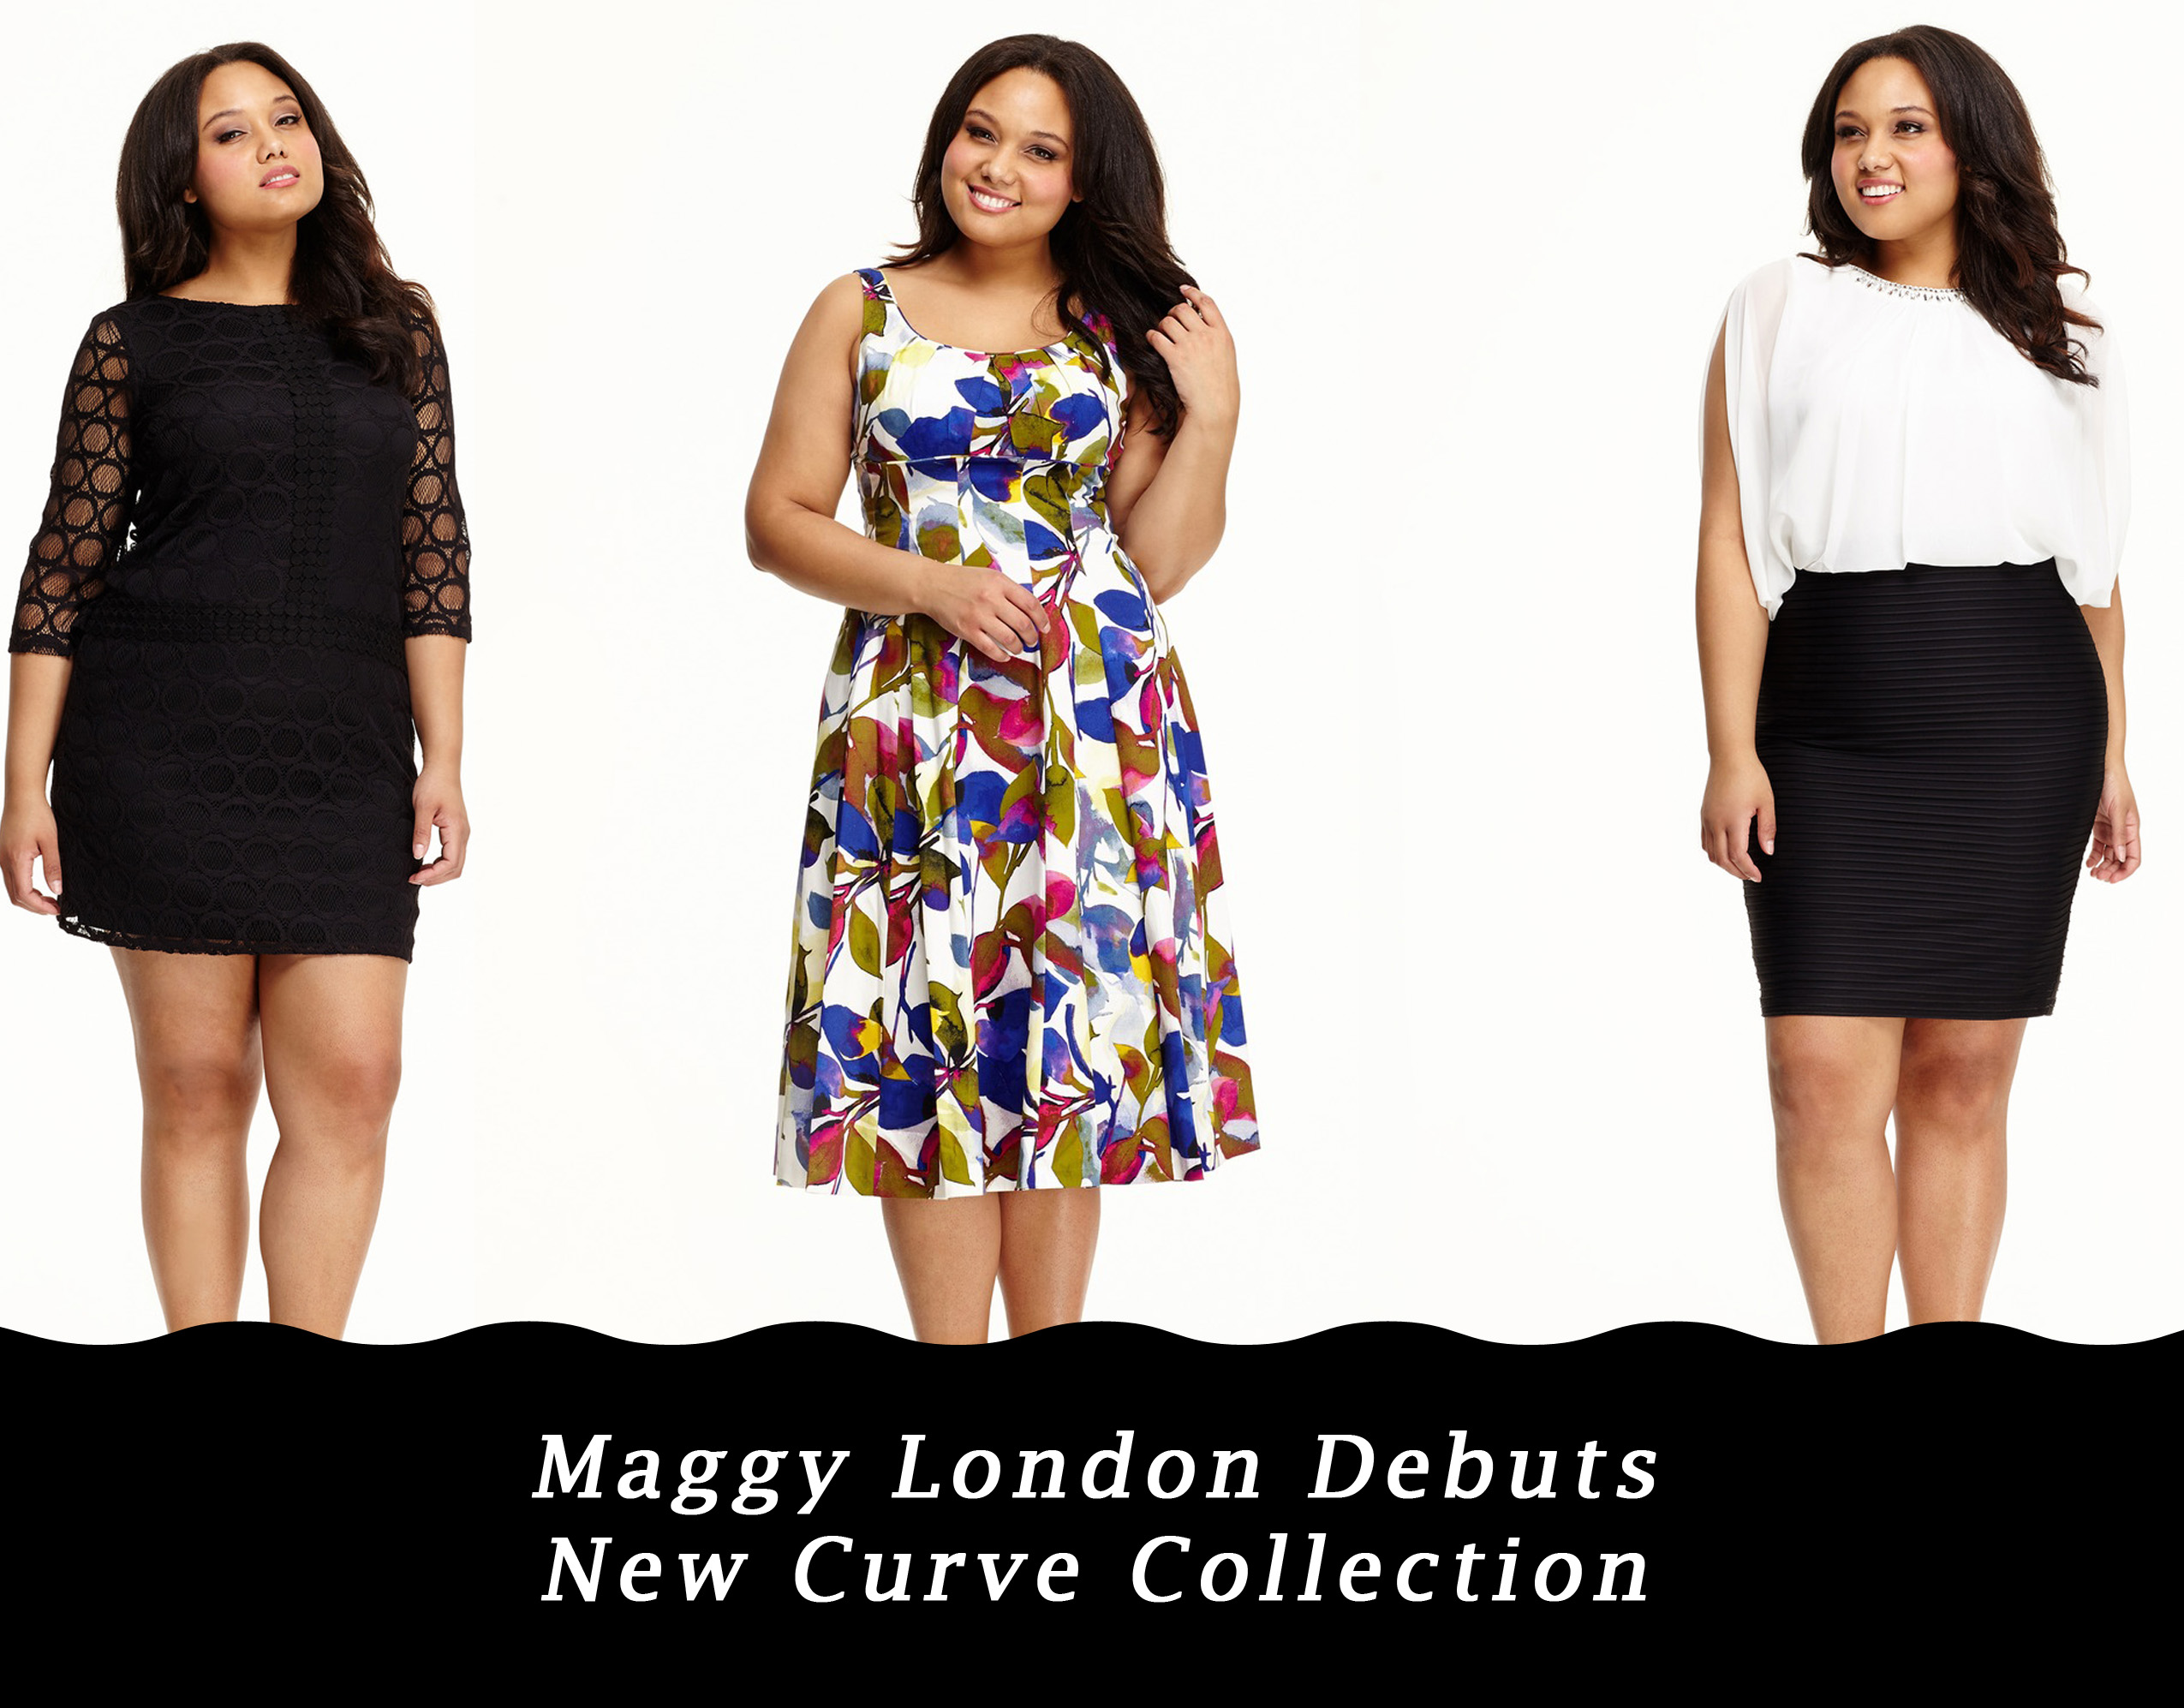 Maggy London Debuts Their New Curve Collection Featuring Plus Size Model Grisel